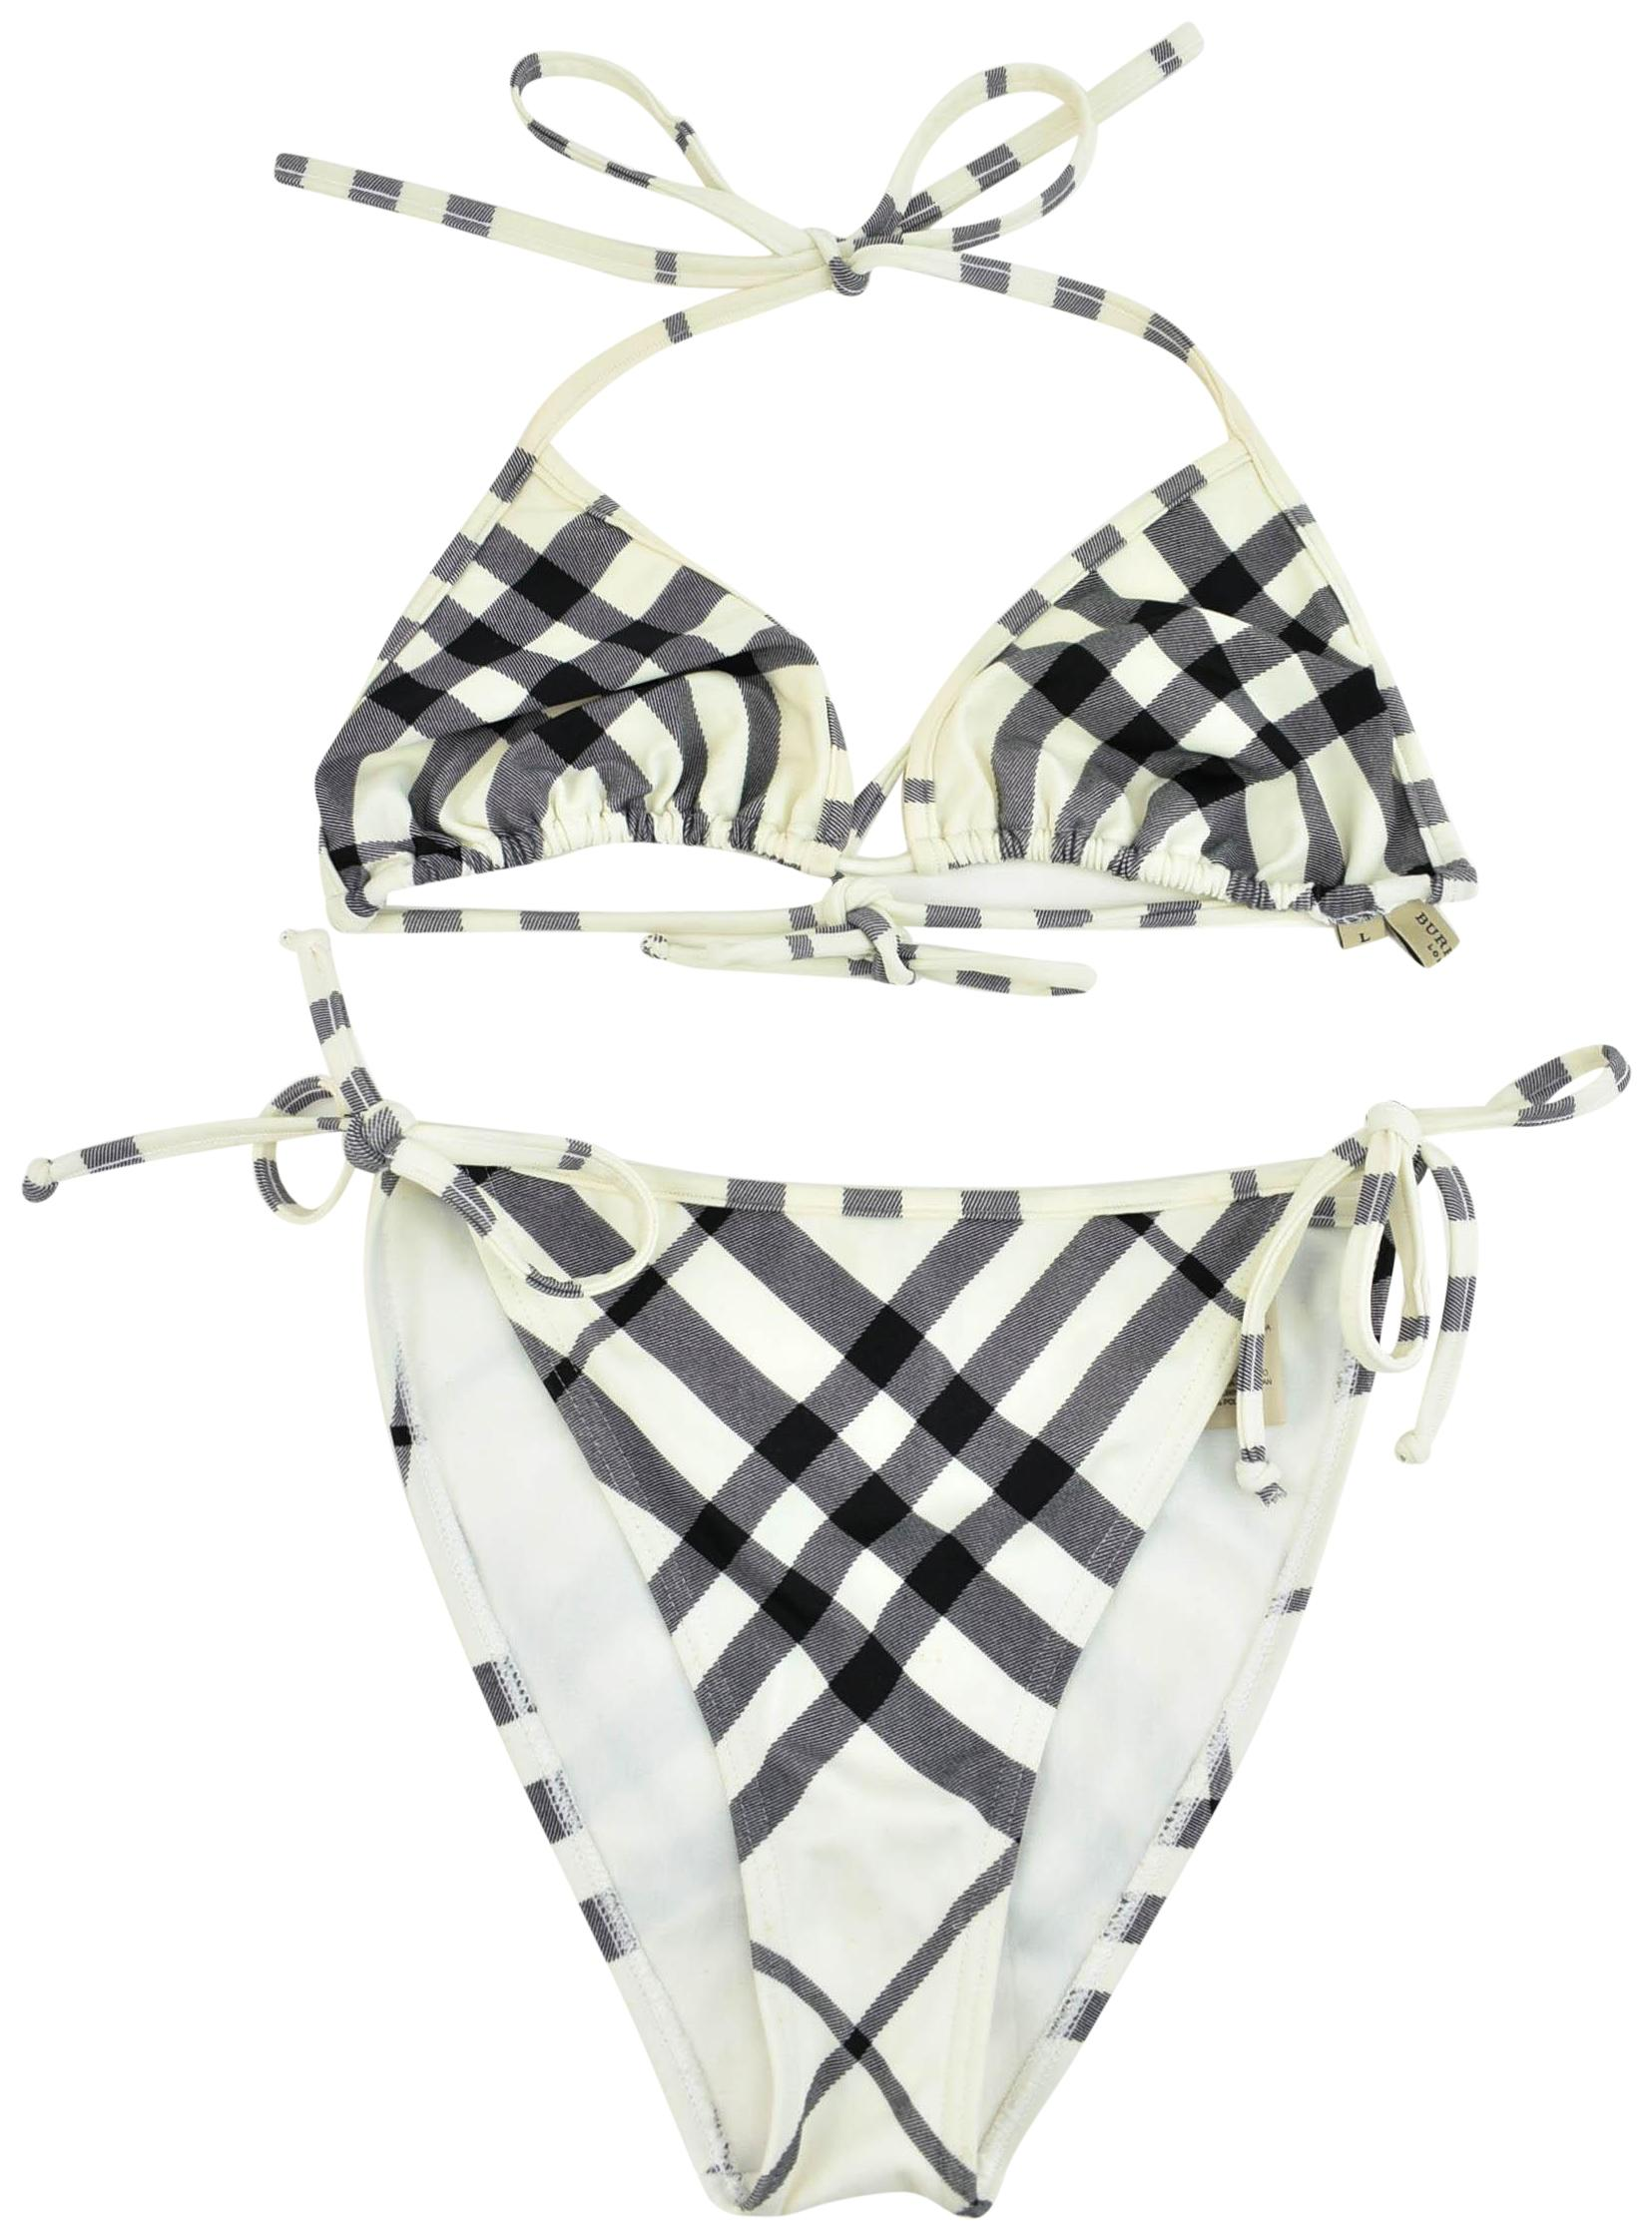 Burberry bikini on sale